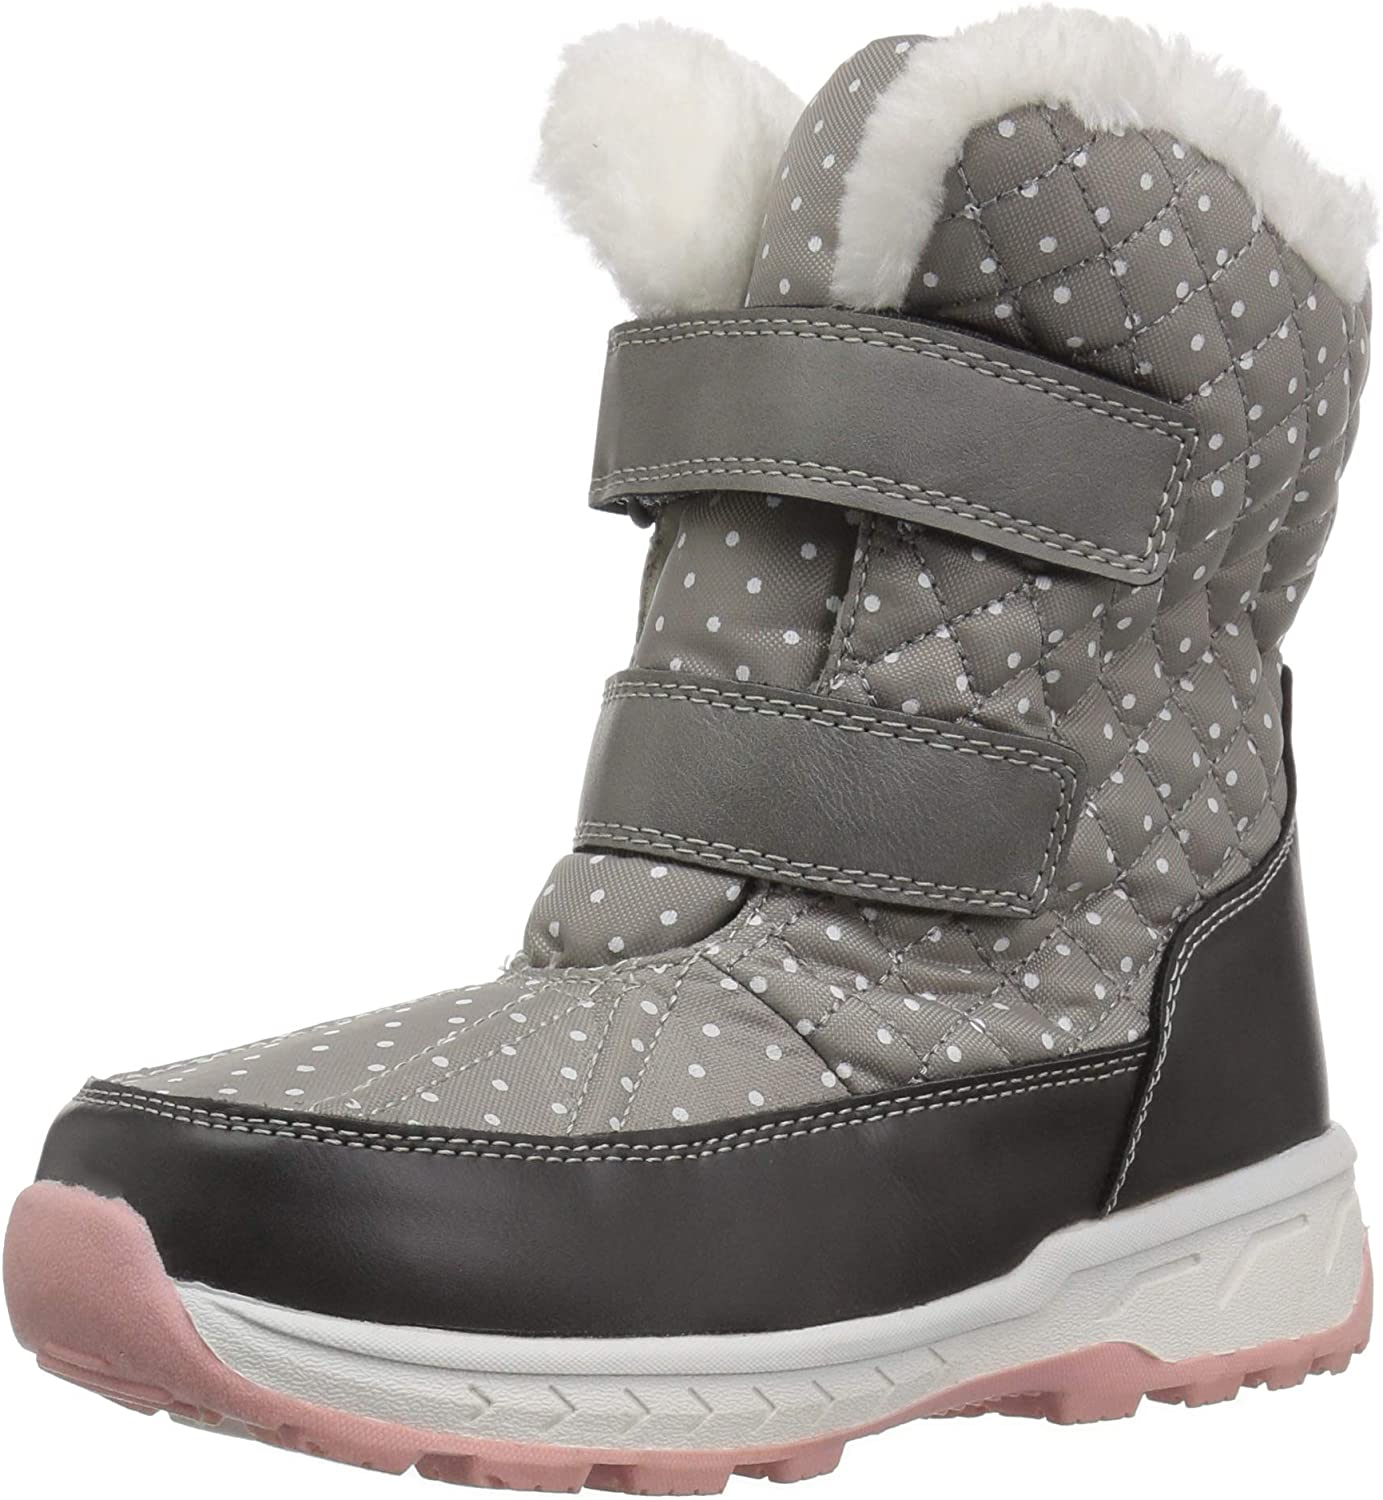 Carter's Girl's Fonda Cold Weather Boot